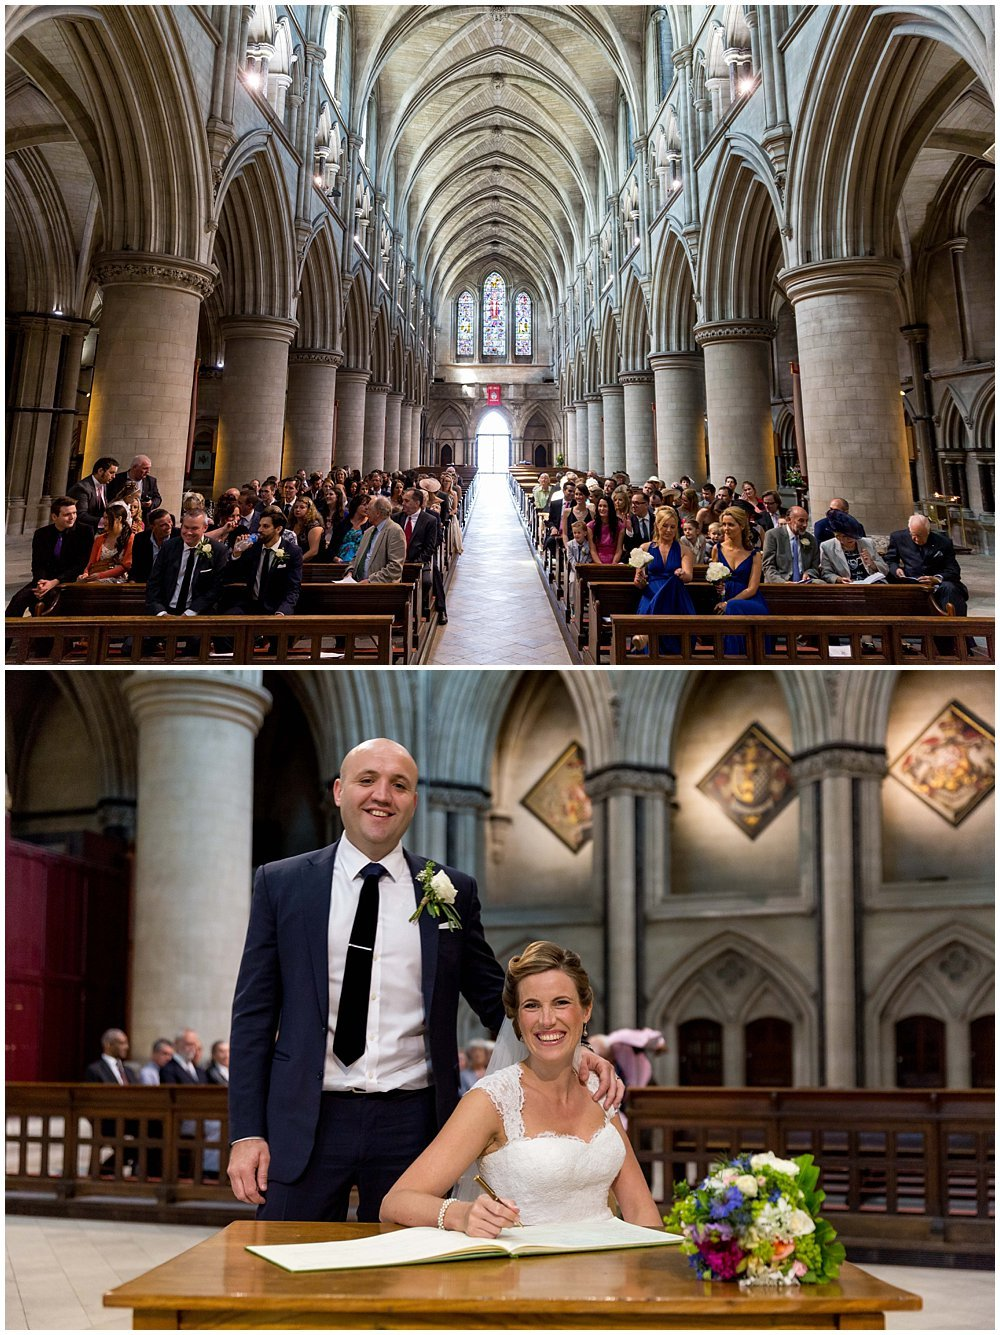 AMY AND DUNCAN NORWICH CATHEDRAL AND THE BOATHOUSE WEDDING - NORWICH AND NORFOLK WEDDING PHOTOGRAPHER 18